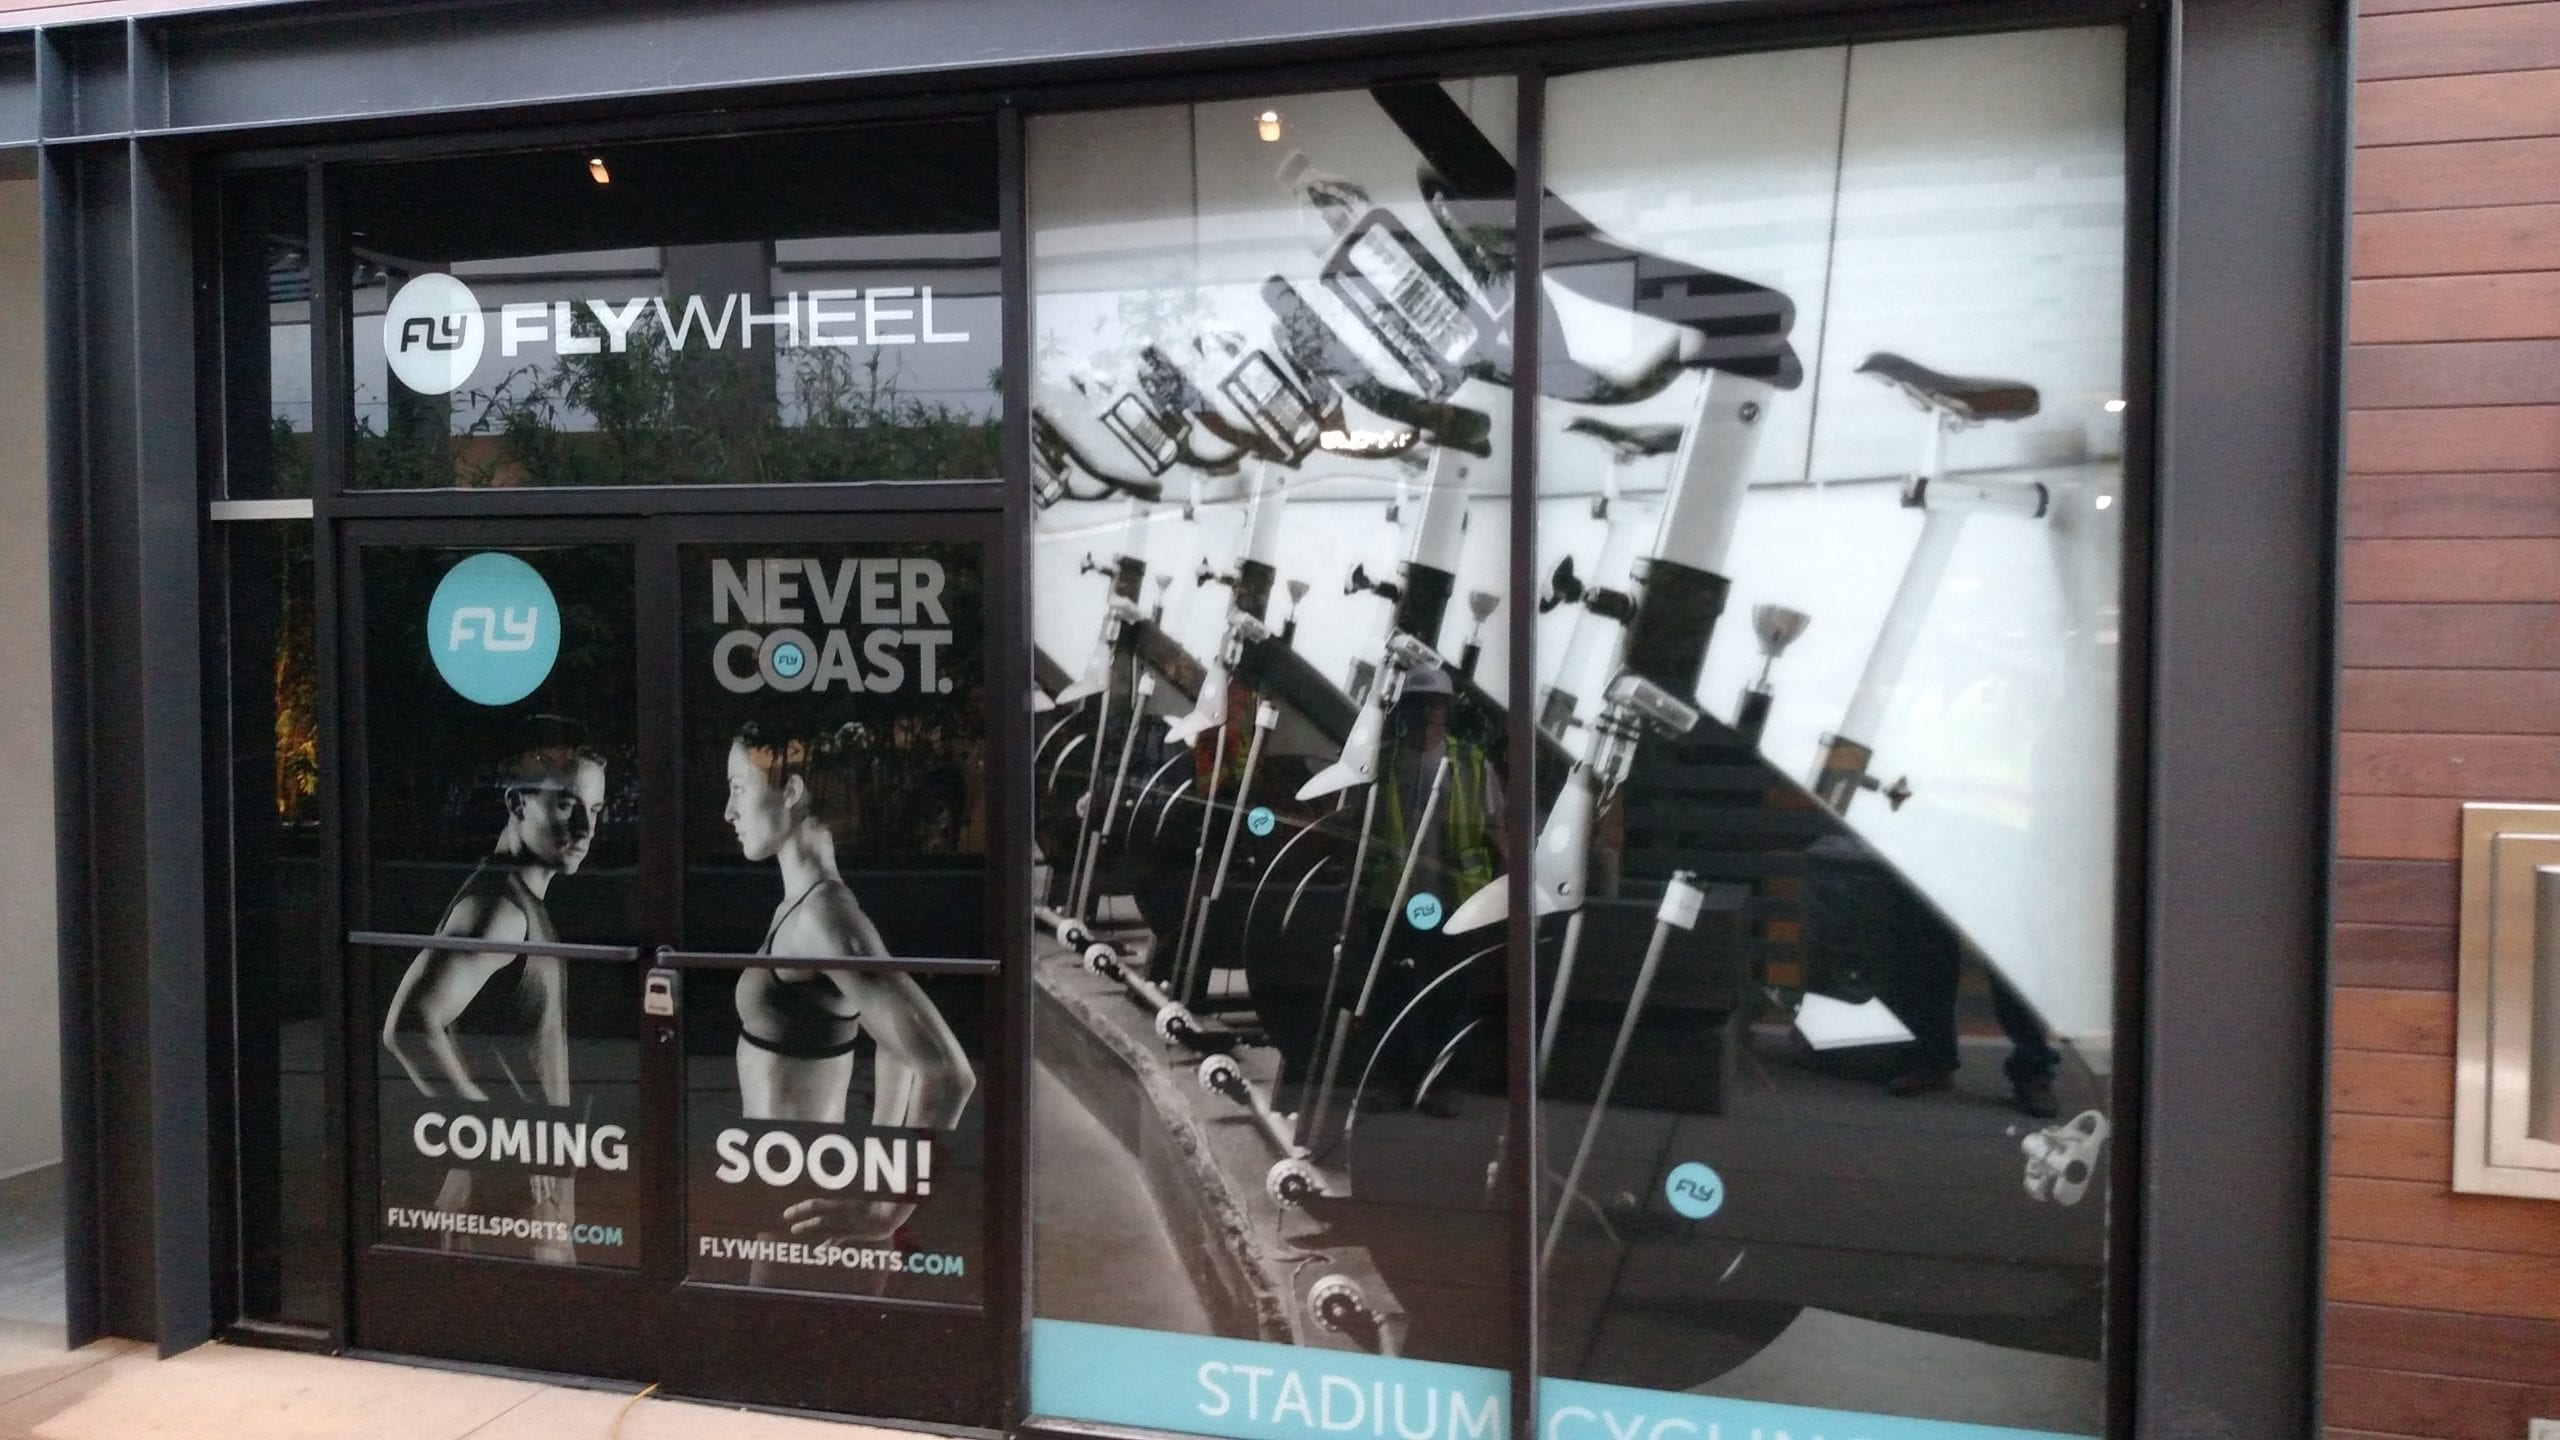 FlyWheel fitness construction